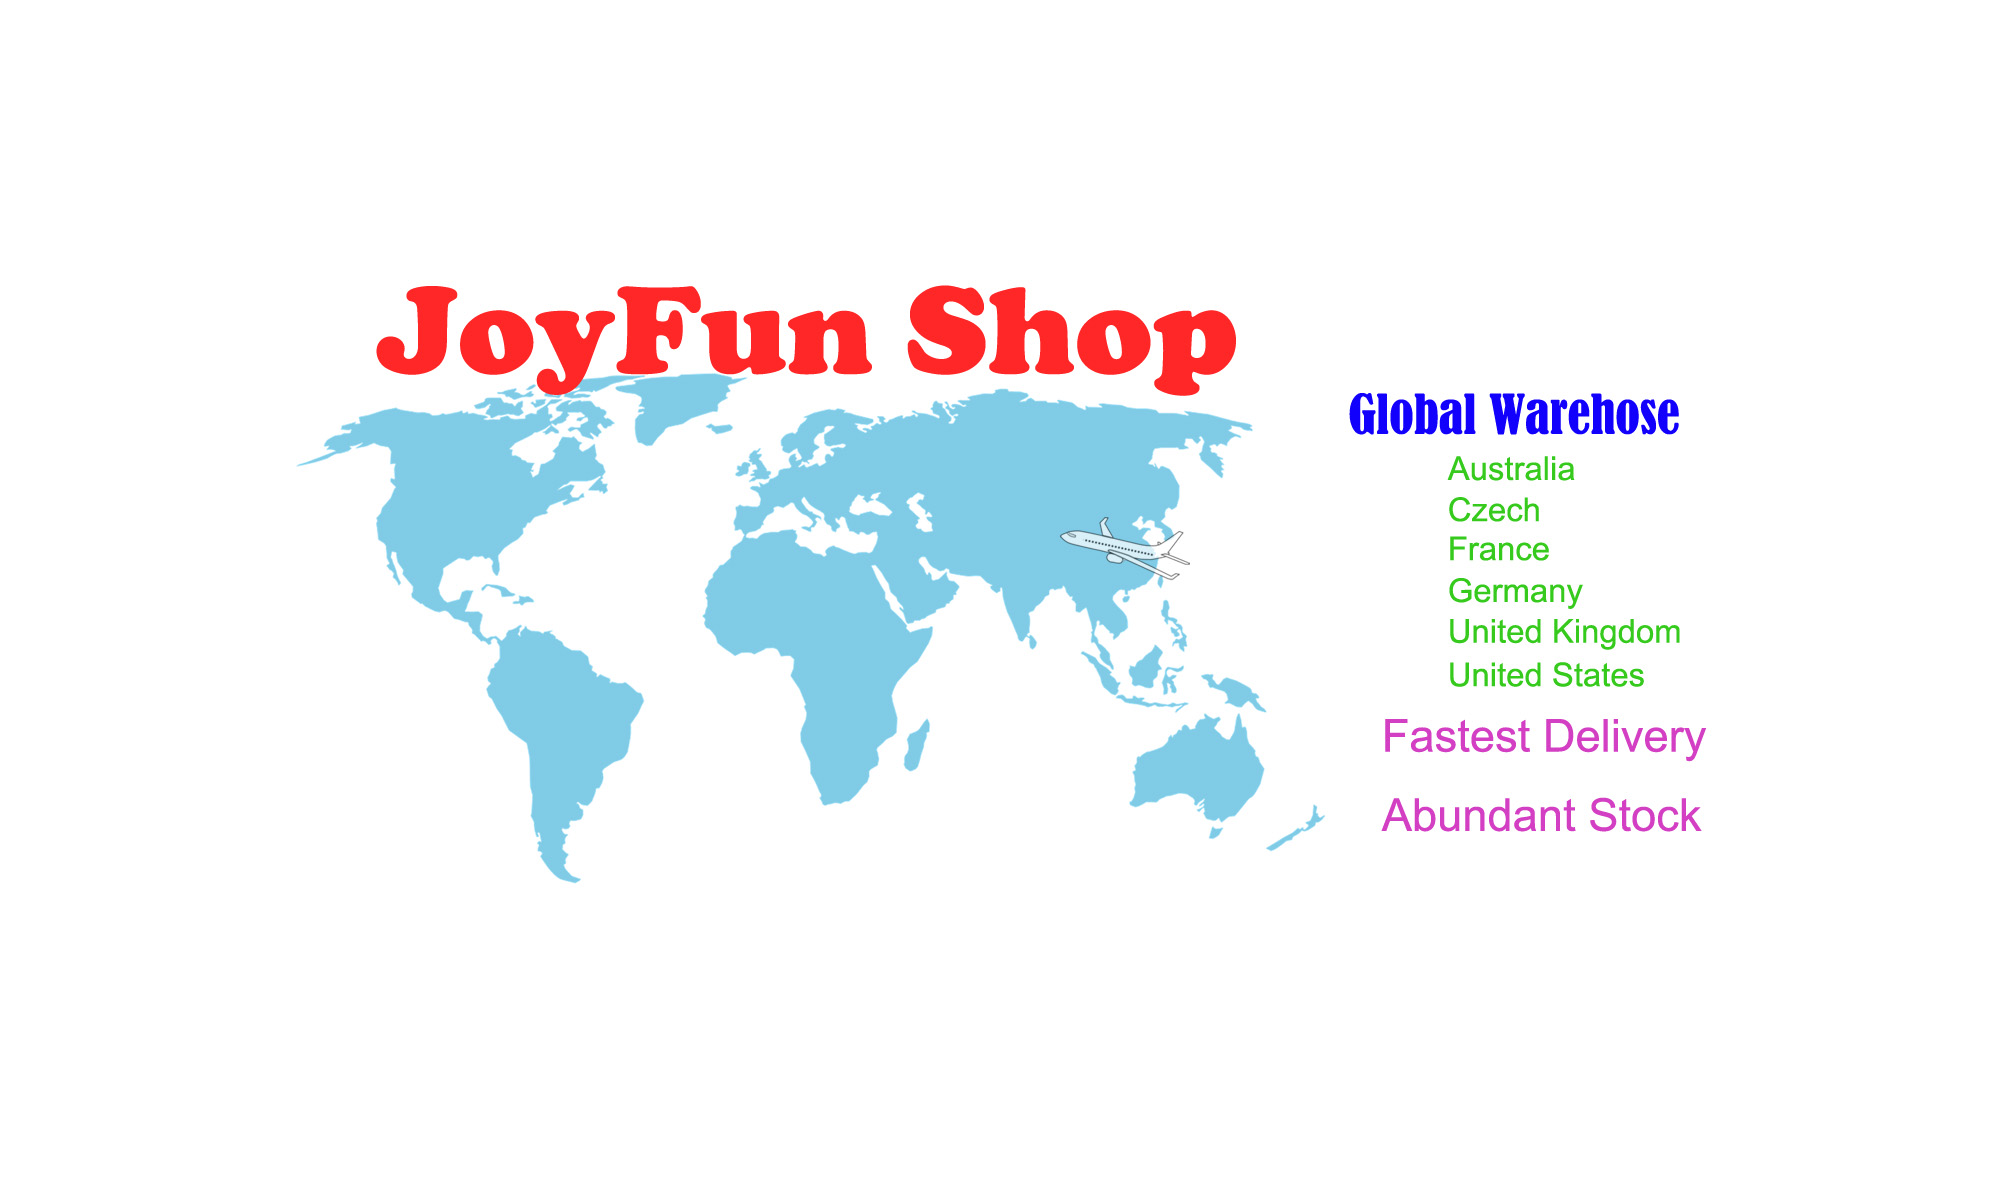 JoyFun Shop